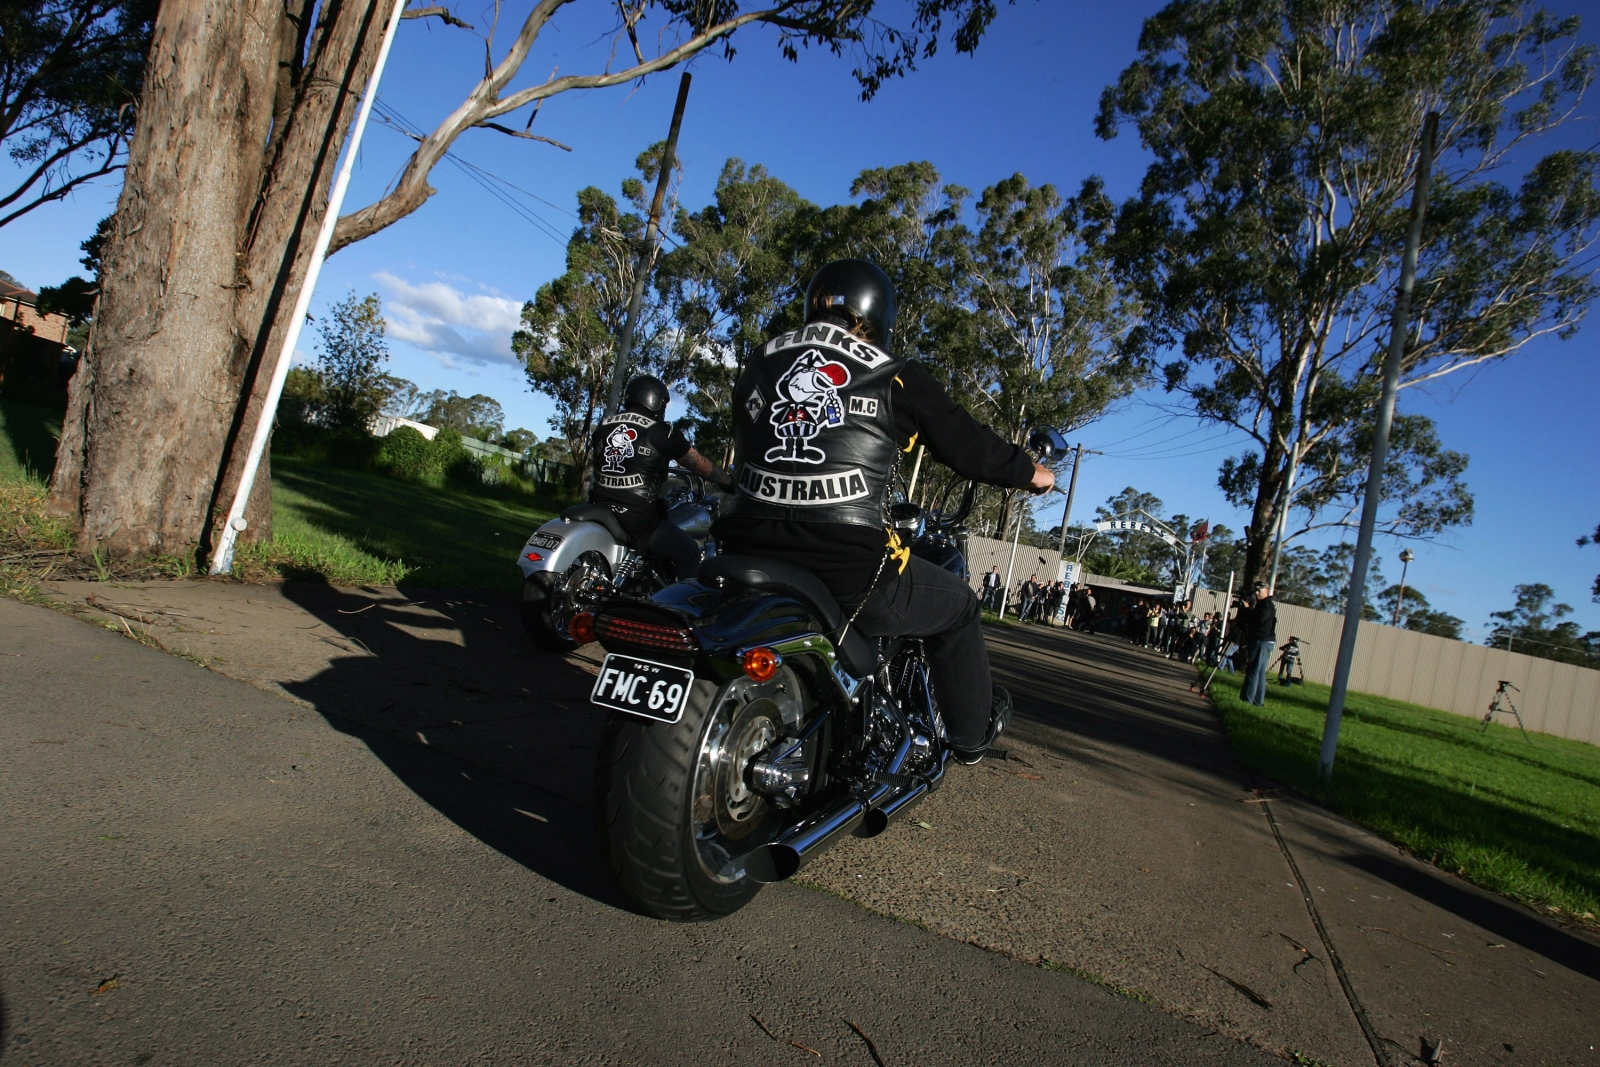 Members of the Finks Australian bikie gang (Getty)